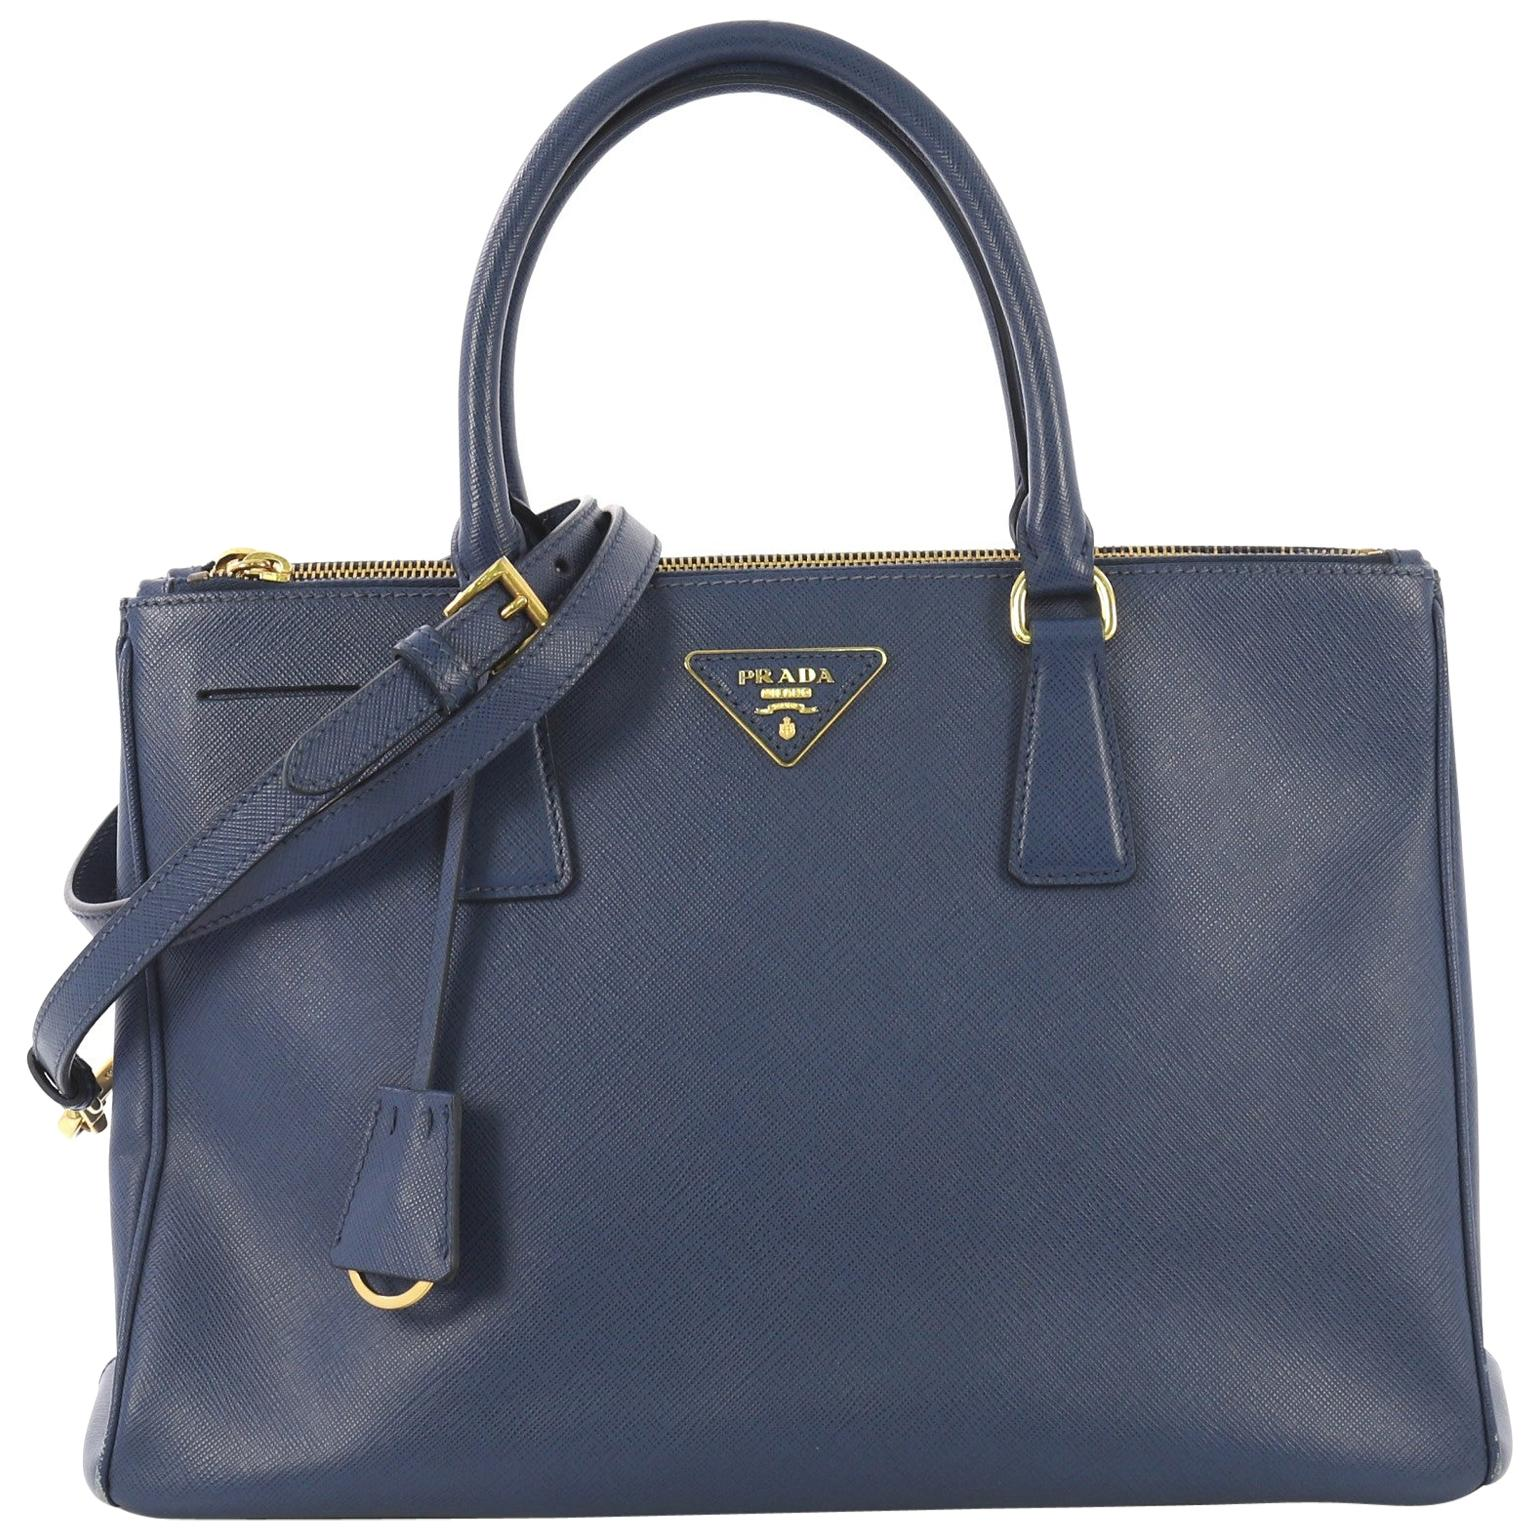 af1369c6b586ee Vintage Prada Handbags and Purses - 1,245 For Sale at 1stdibs